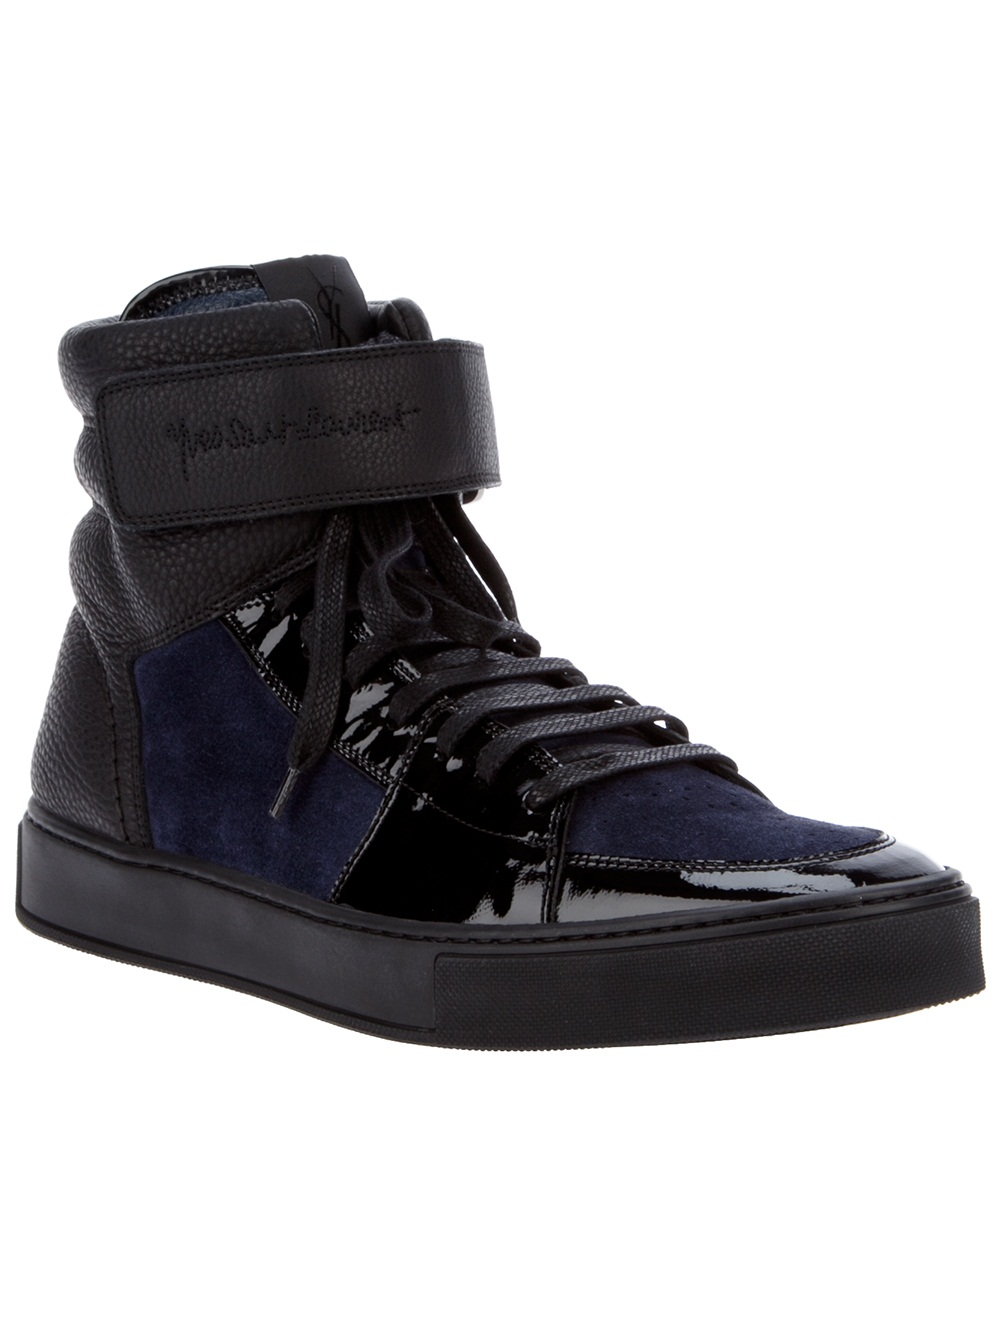 c2ed2e86b0 For the Men: Yves Saint Laurent Malibu Hi Top Sneakers (@YSL) | looty